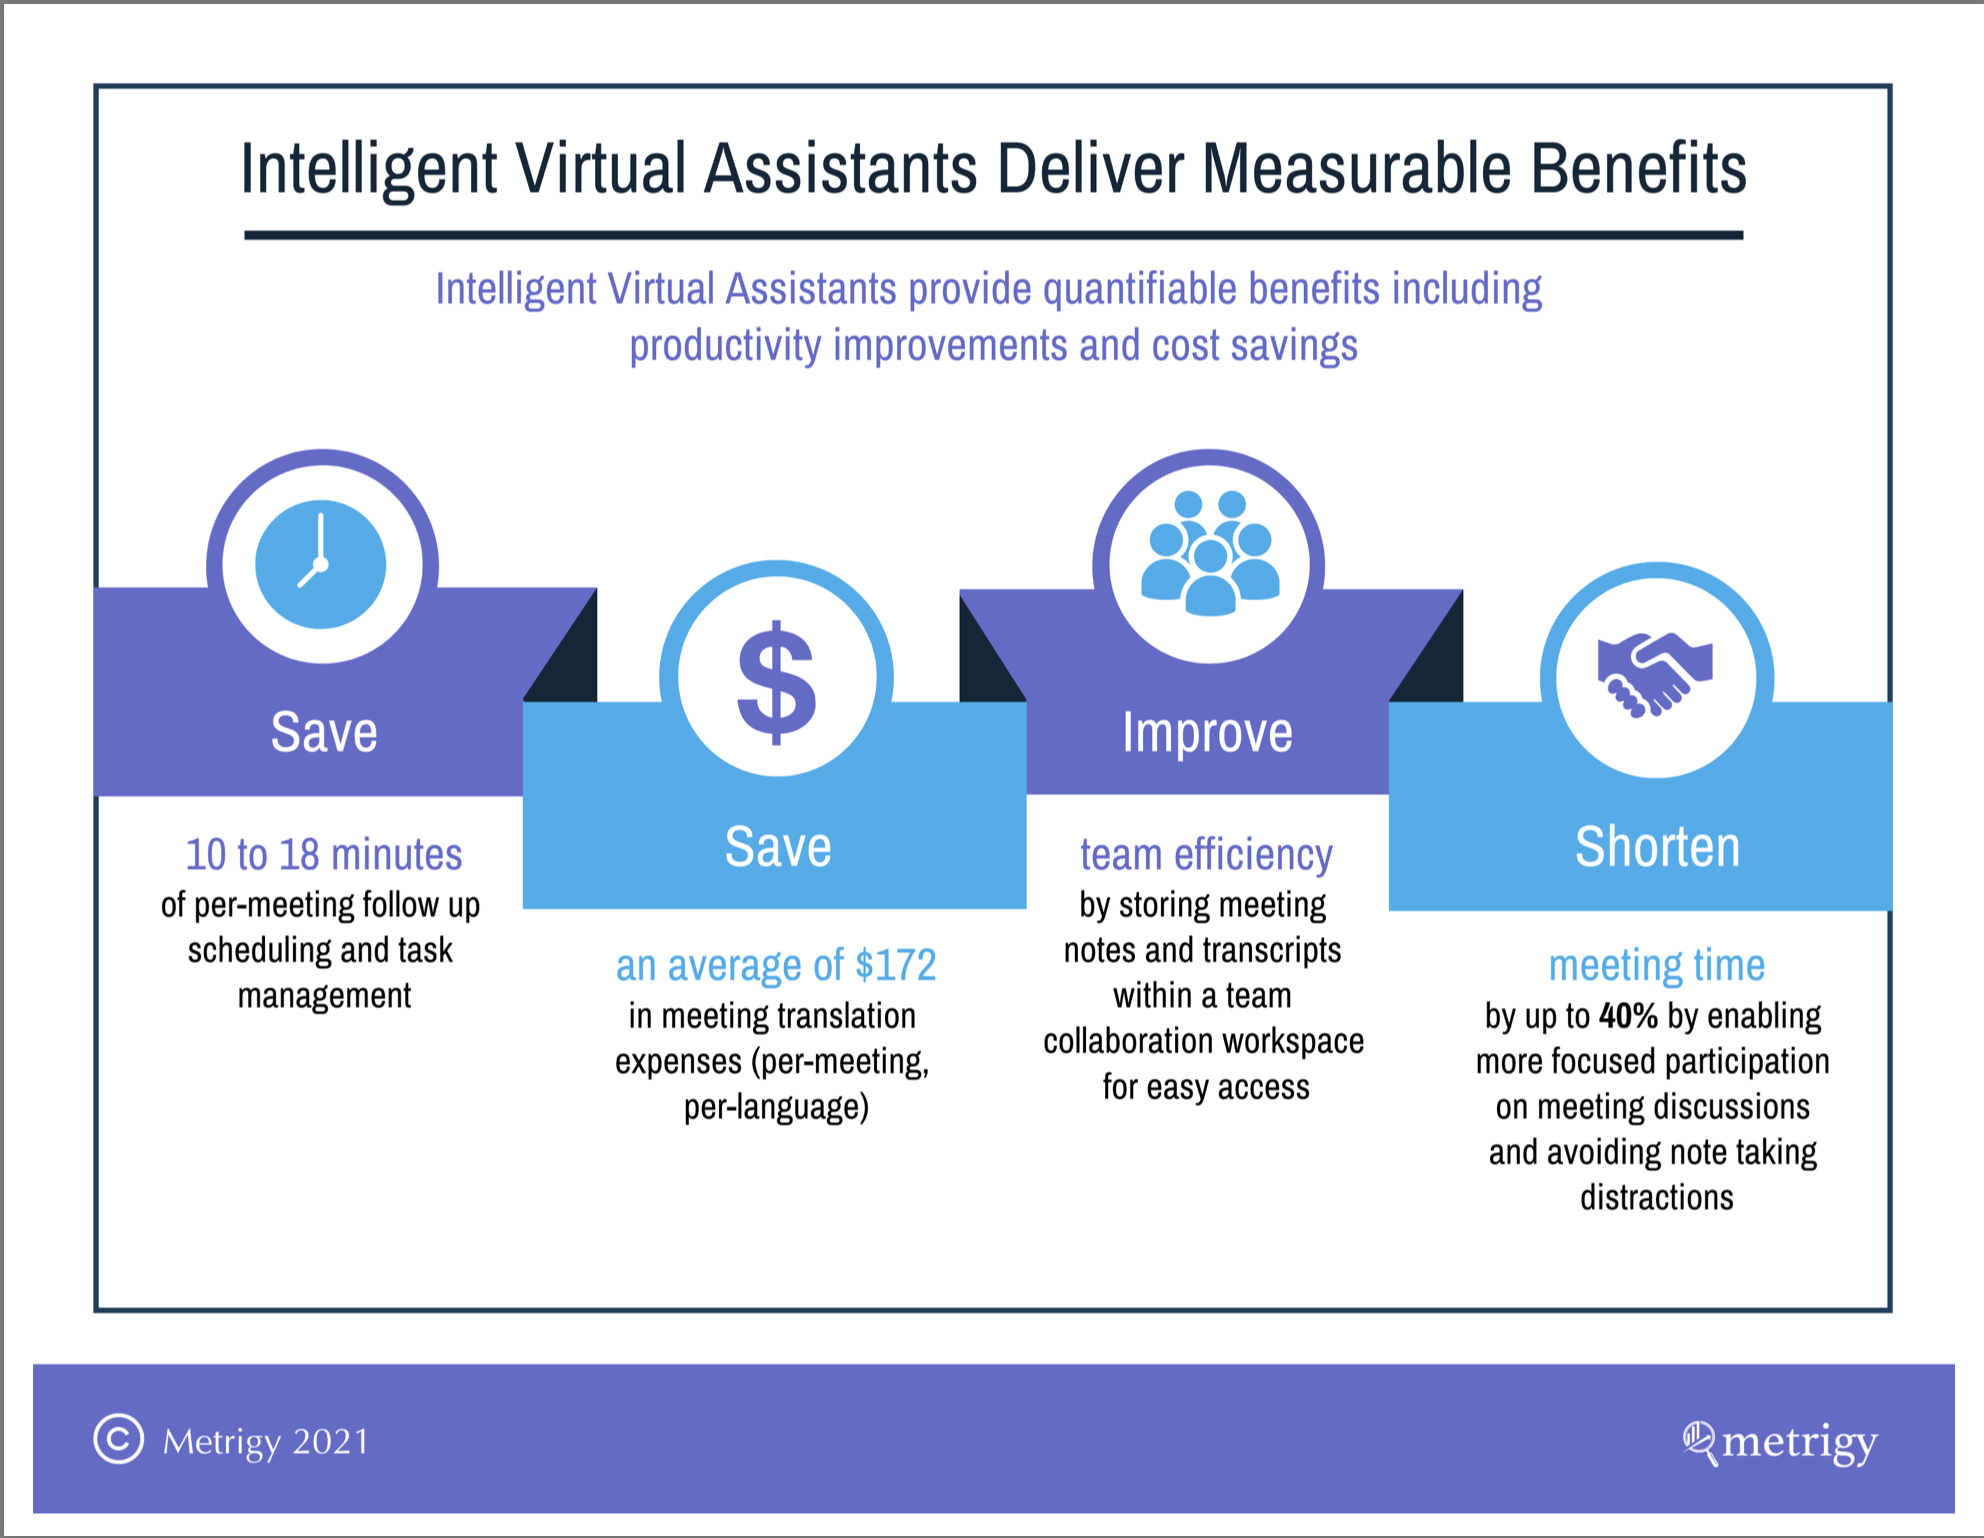 Metrigy infographic on intelligent virtual assistants